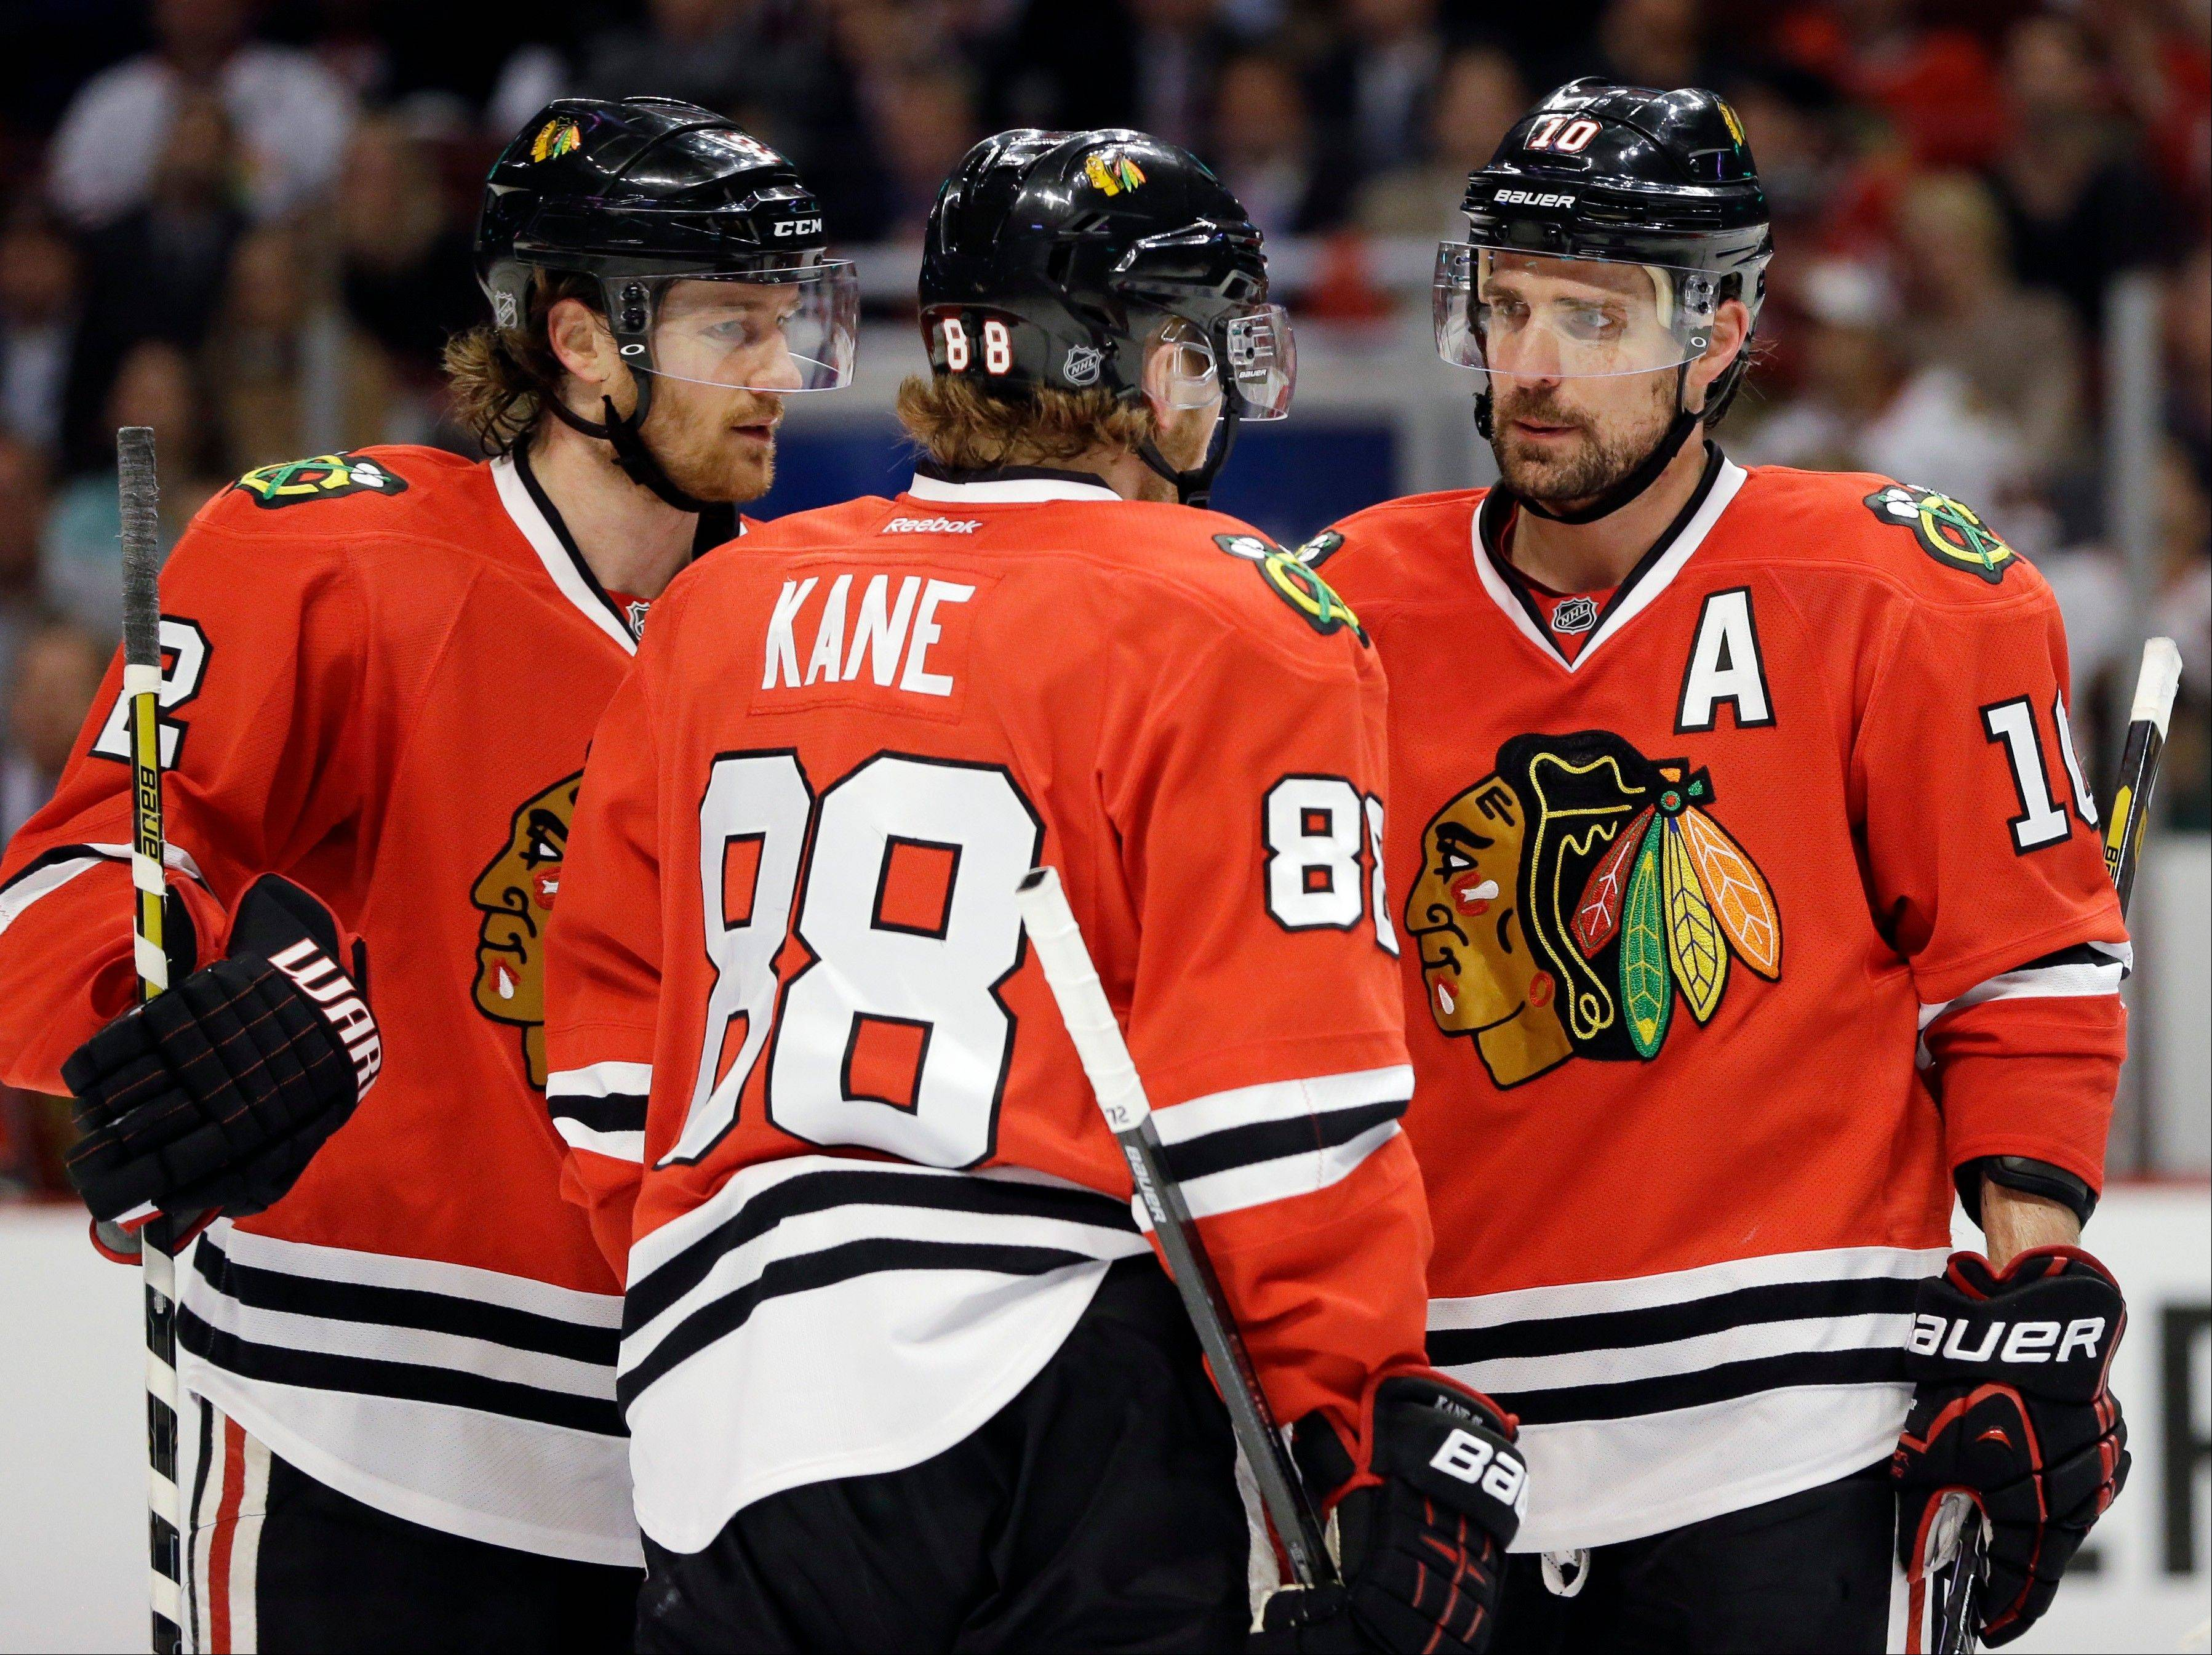 Chicago Blackhawks' Patrick Sharp (10) talks with teammates Duncan Keith (2) and Patrick Kane (88) during the second period of Game 1 of an NHL hockey playoffs Western Conference semifinal against the Detroit Red Wings in Chicago, Wednesday, May 15, 2013.